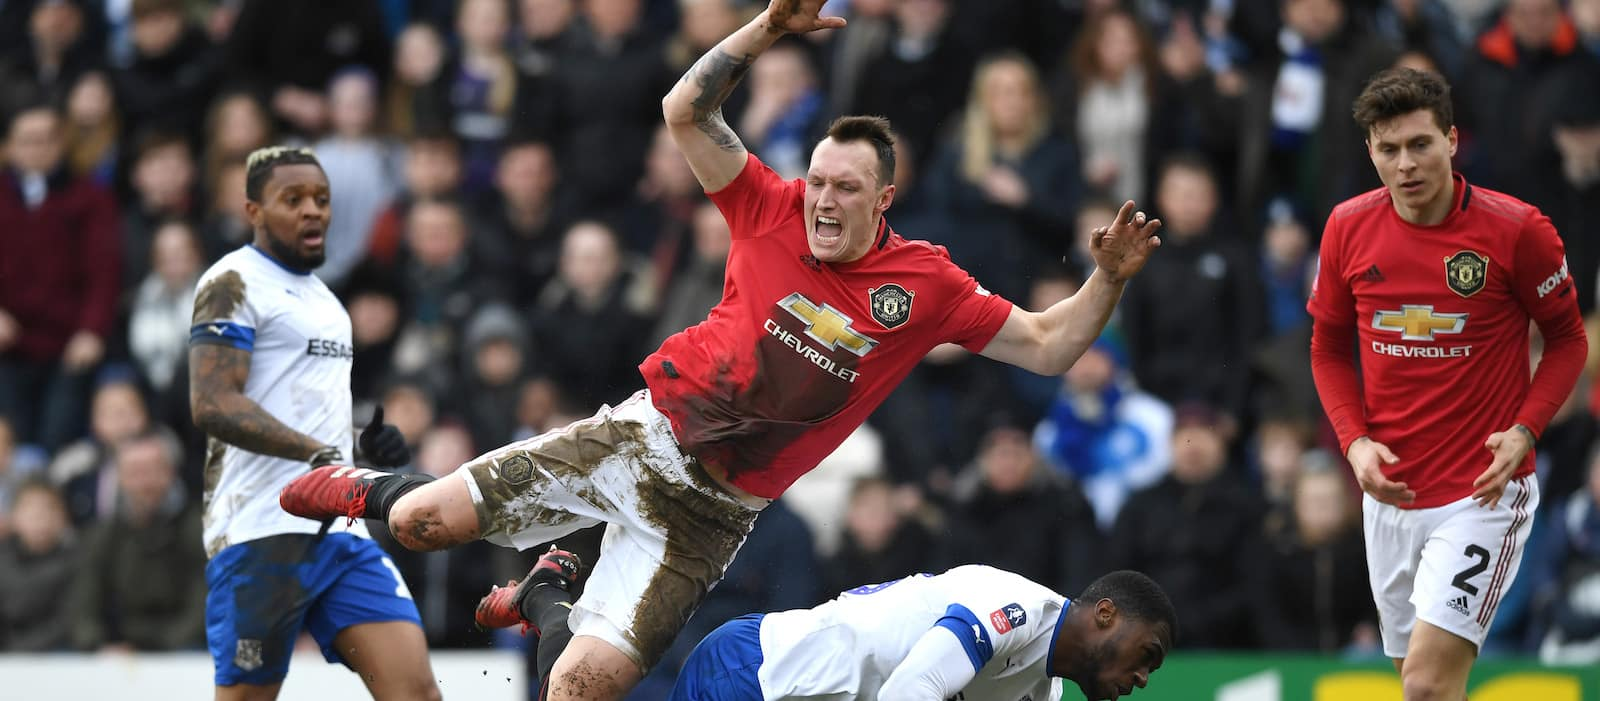 Phil Jones set for January move but destination remains unsettled